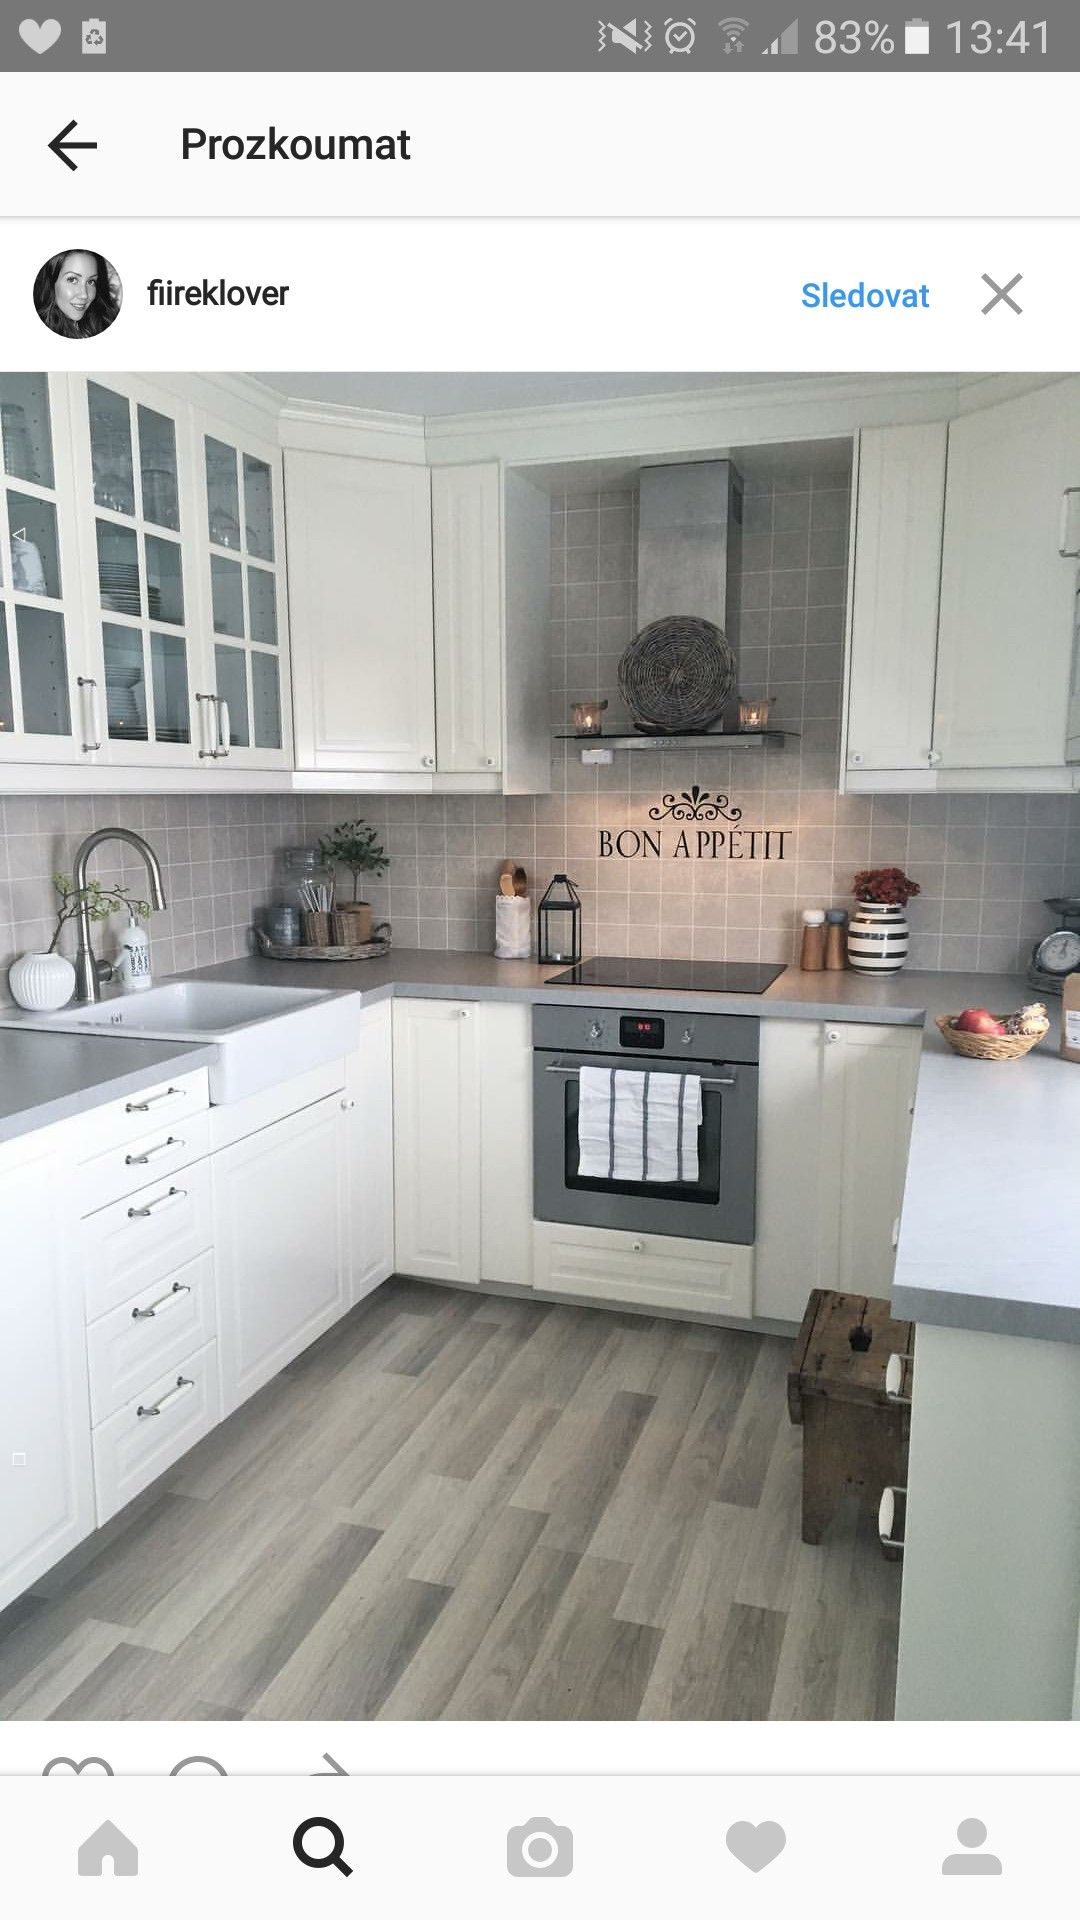 Come Progettare Cucina Ikea pin by natalie on diy home decor (with images) | kitchen